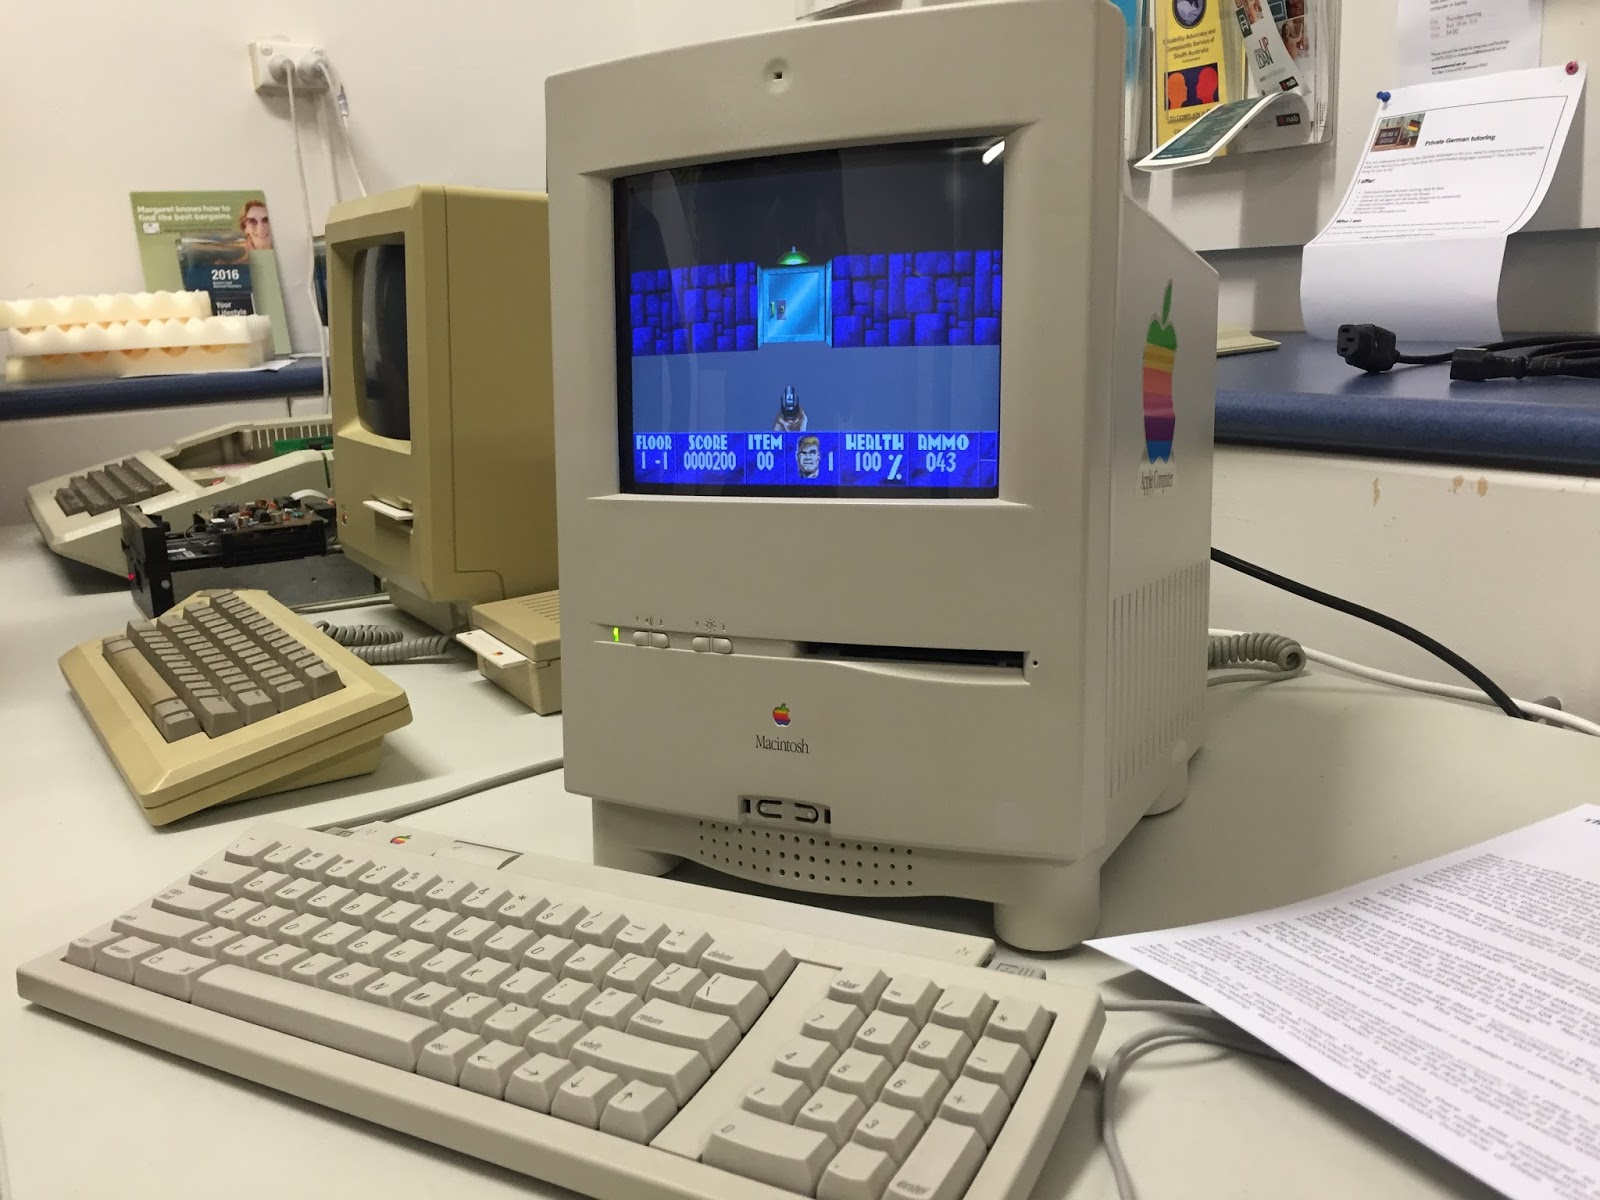 Buy Laptop Adelaide Adelaide Retro Computing Meeting March 2016 Amigablogs